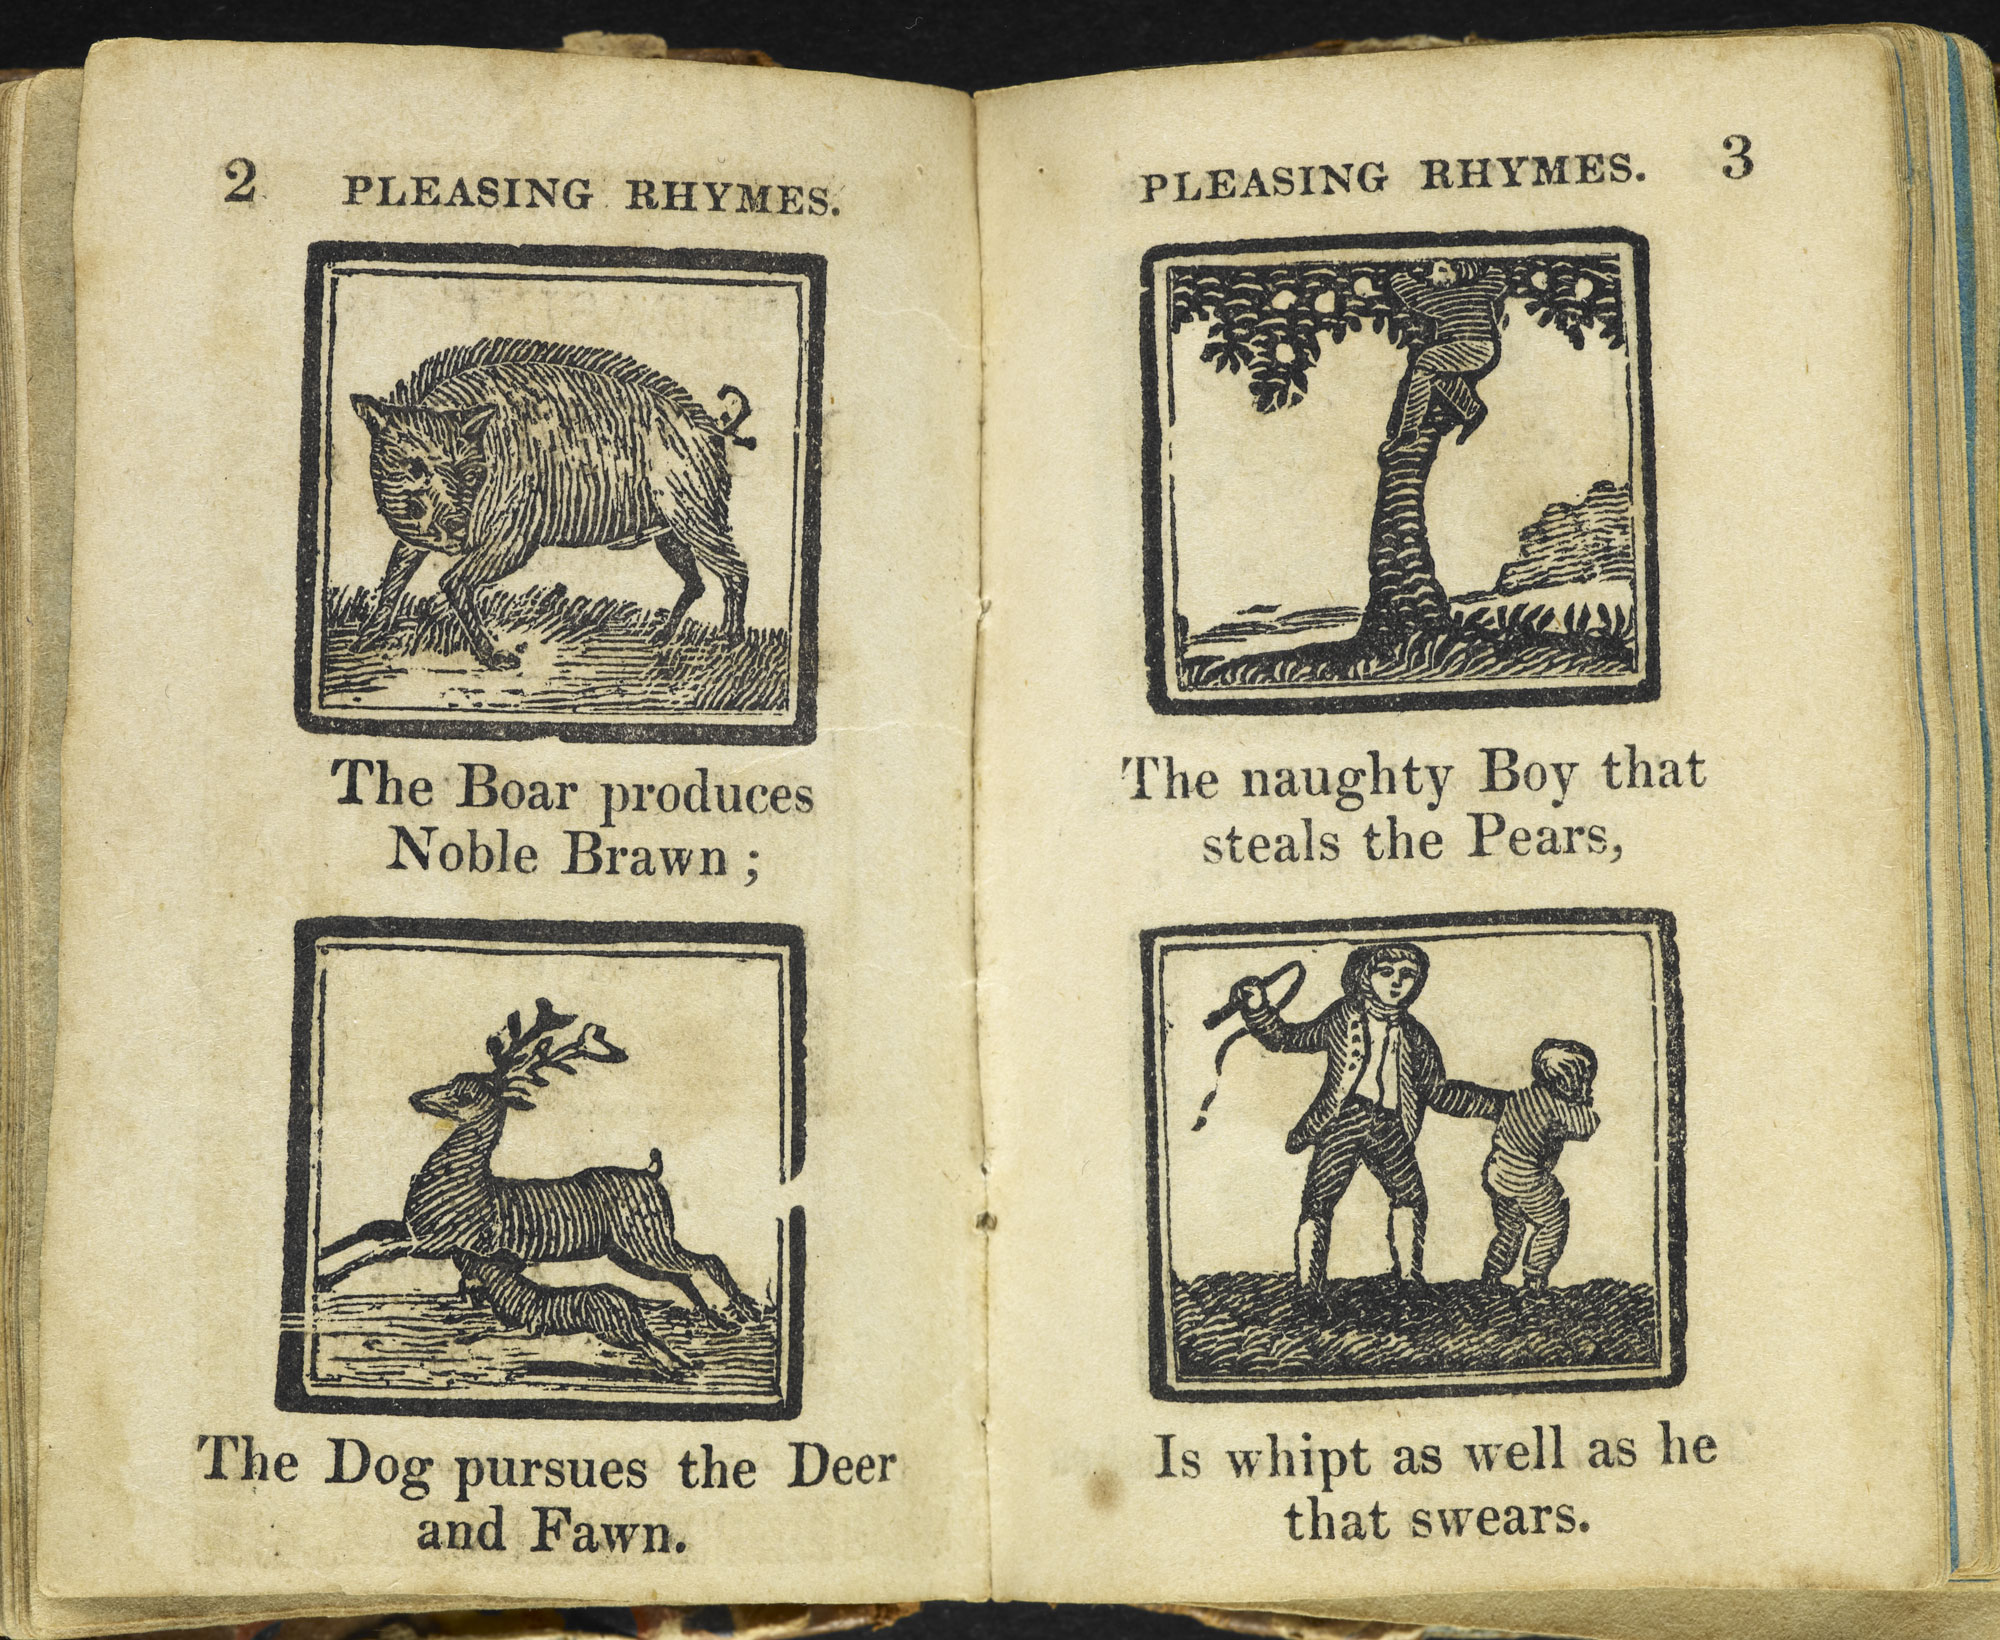 Pleasing rhymes, for children [page: pp. 2-3]